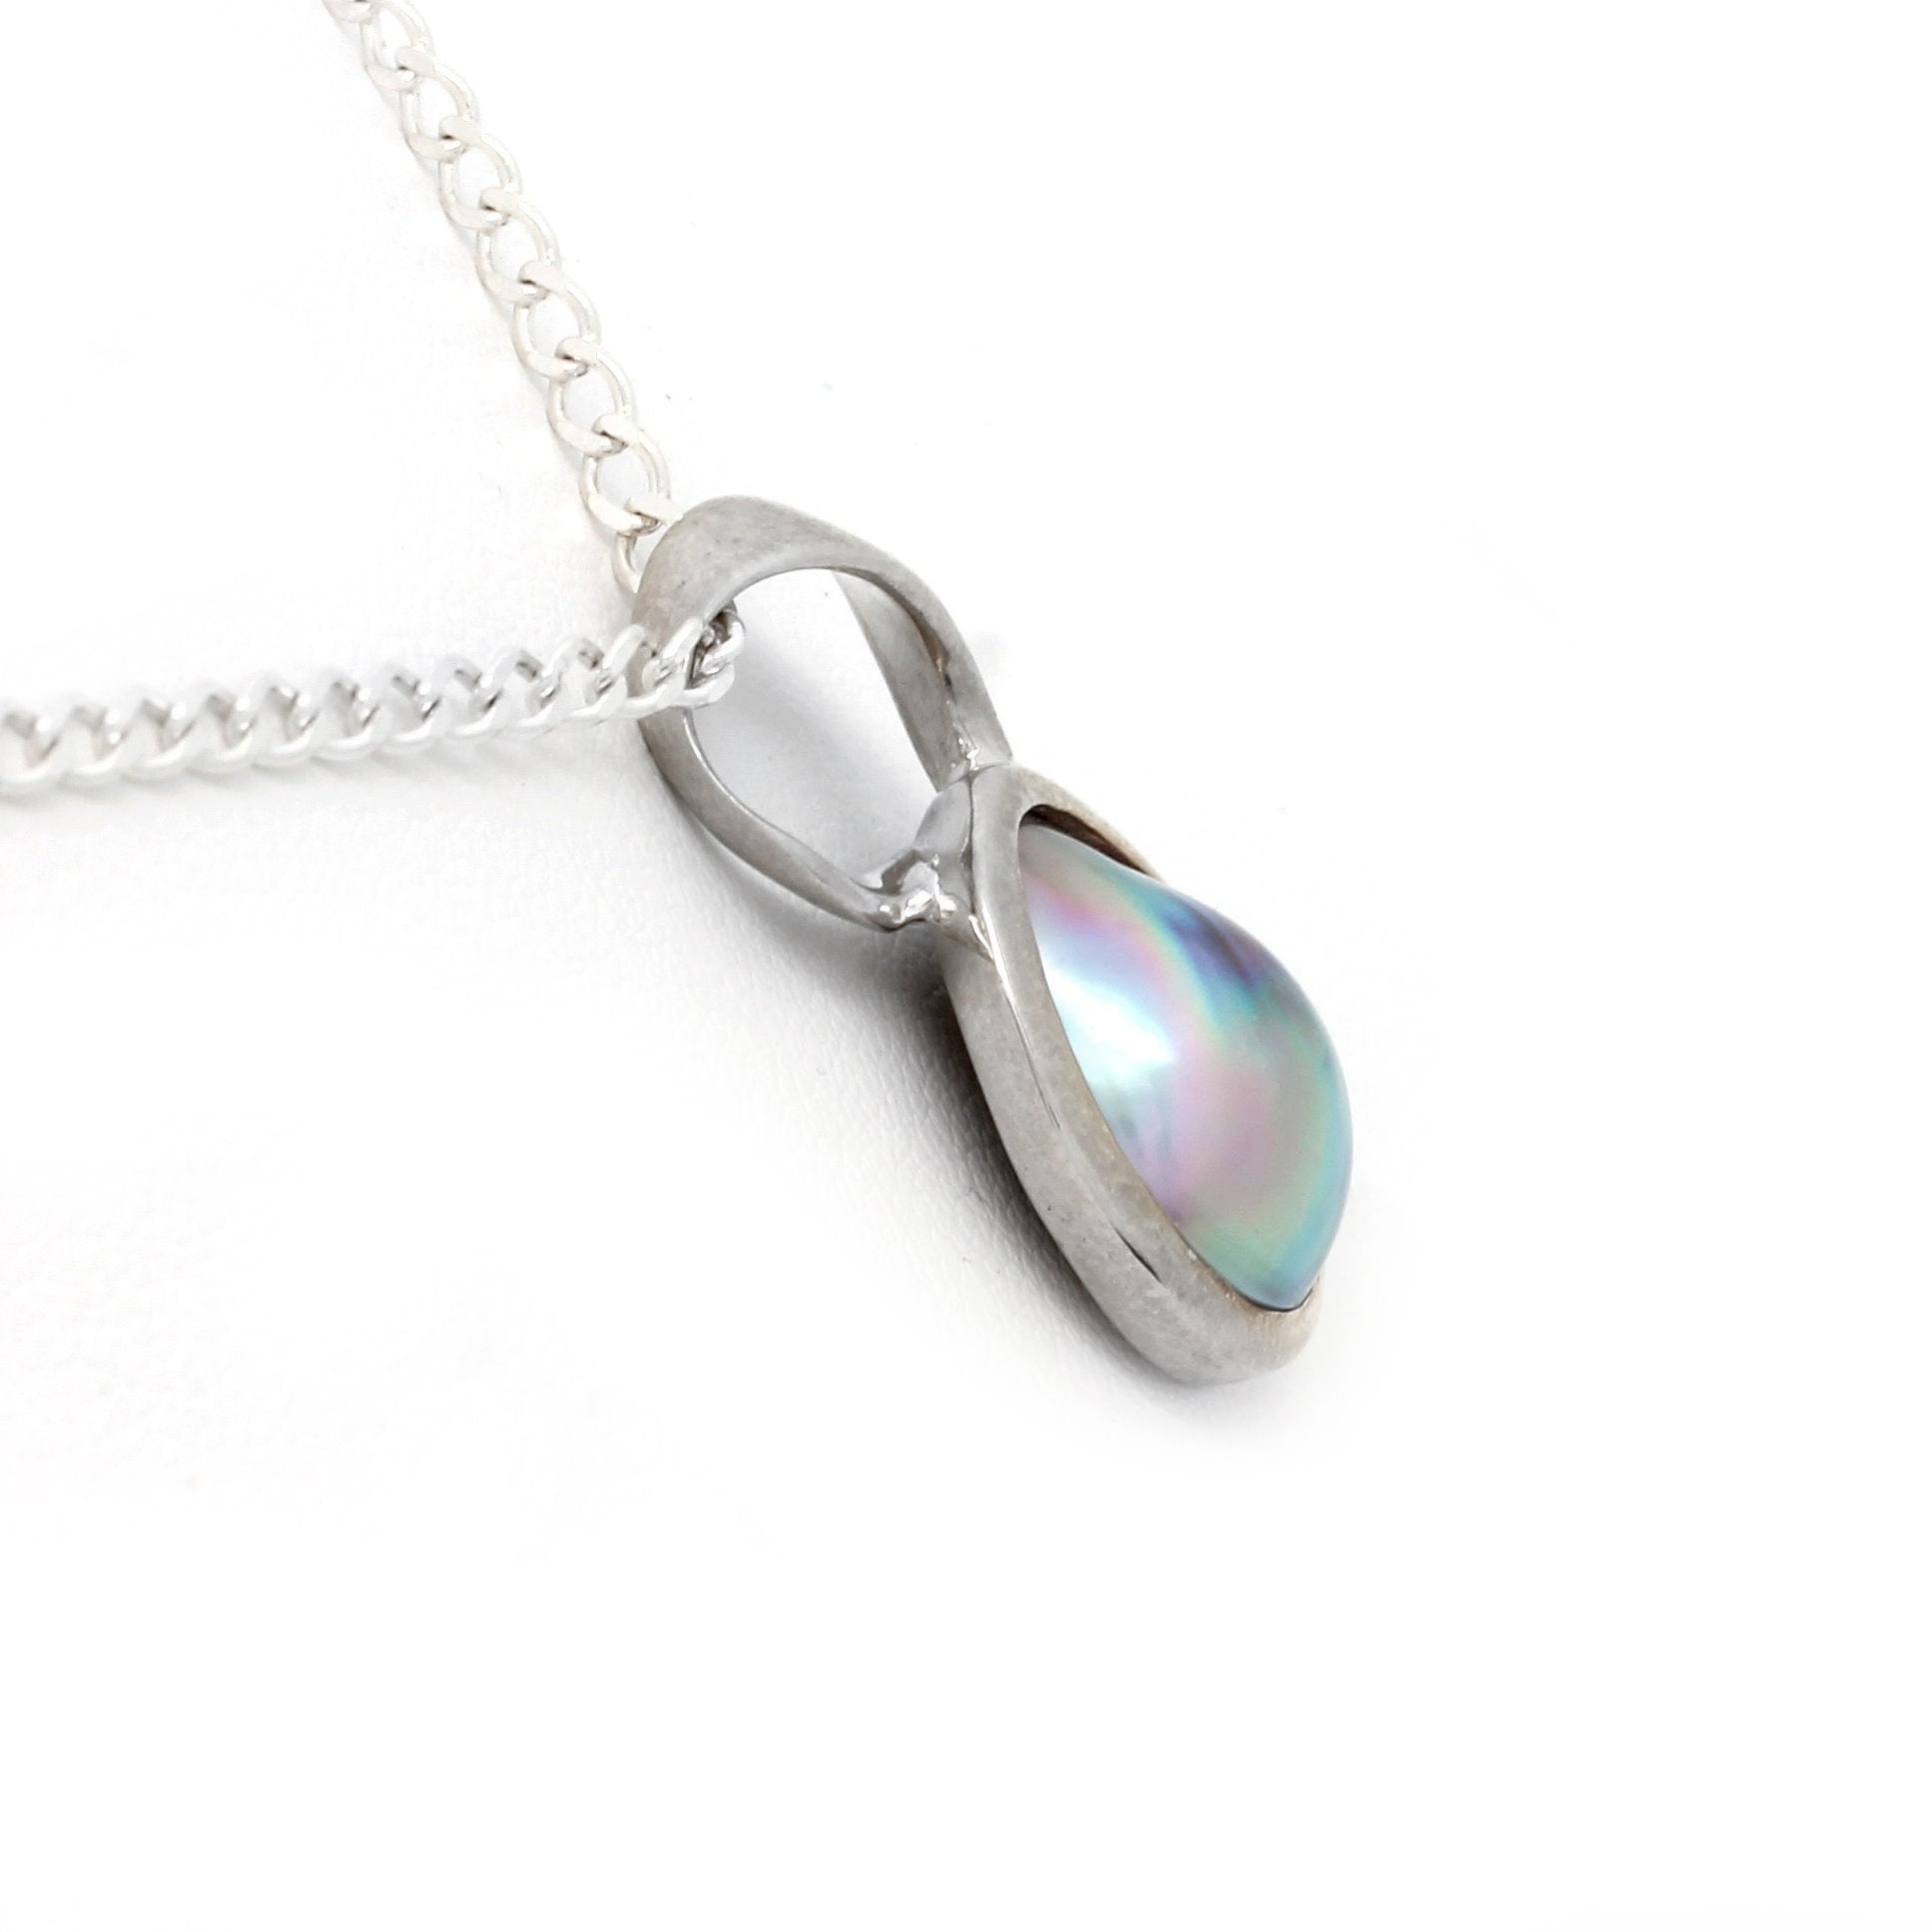 Silver Pendant with Cortez Mabe Pearl by Kathe Mai